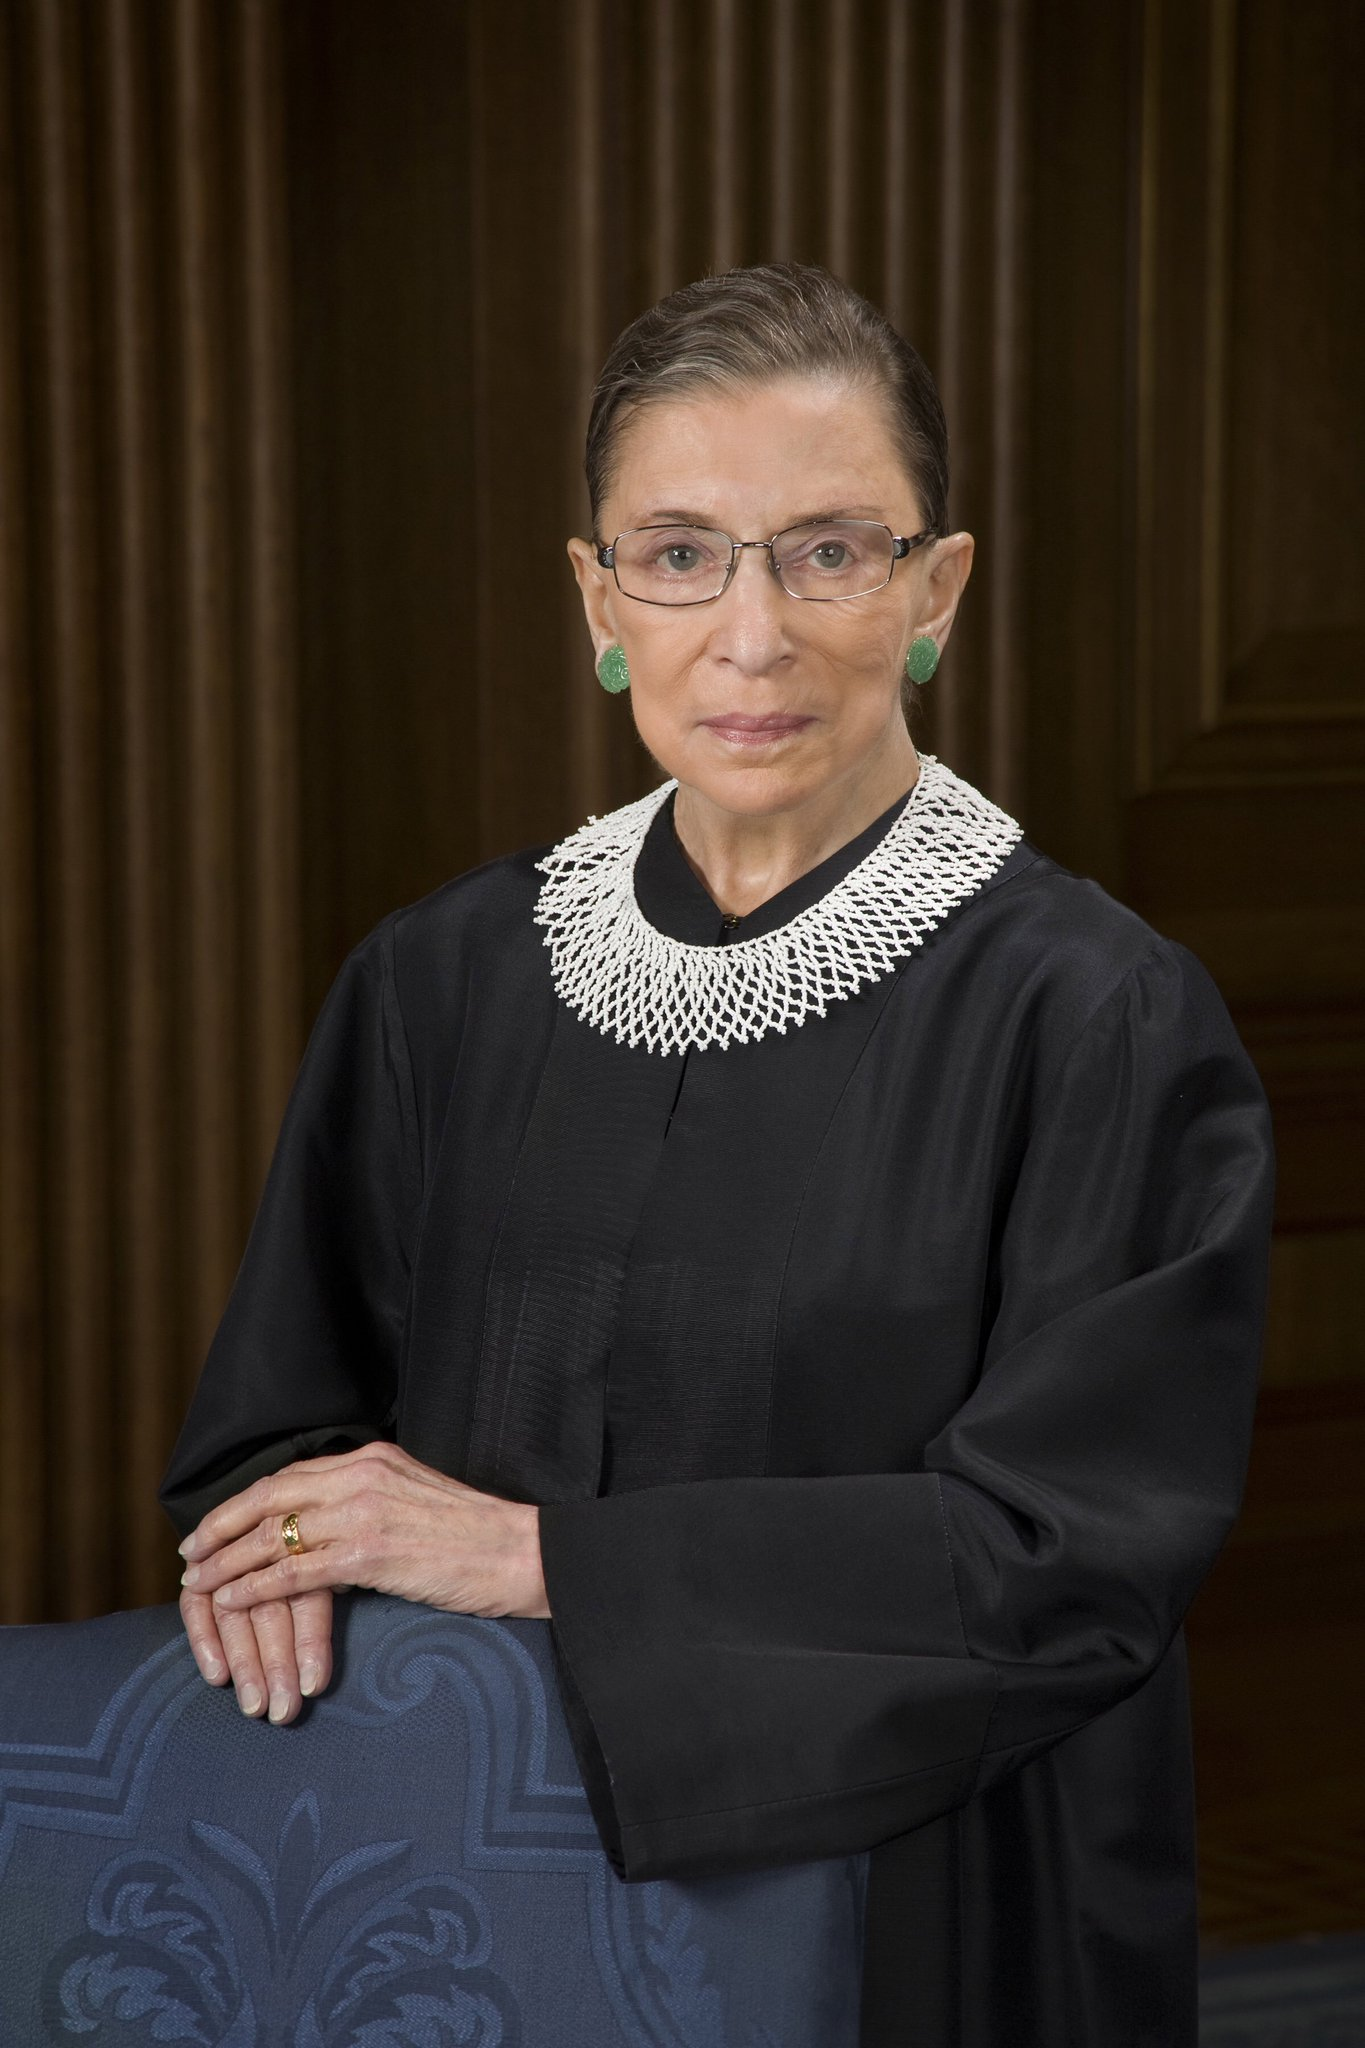 Happy 86th birthday to Supreme Court Justice Ruth Bader Ginsburg!